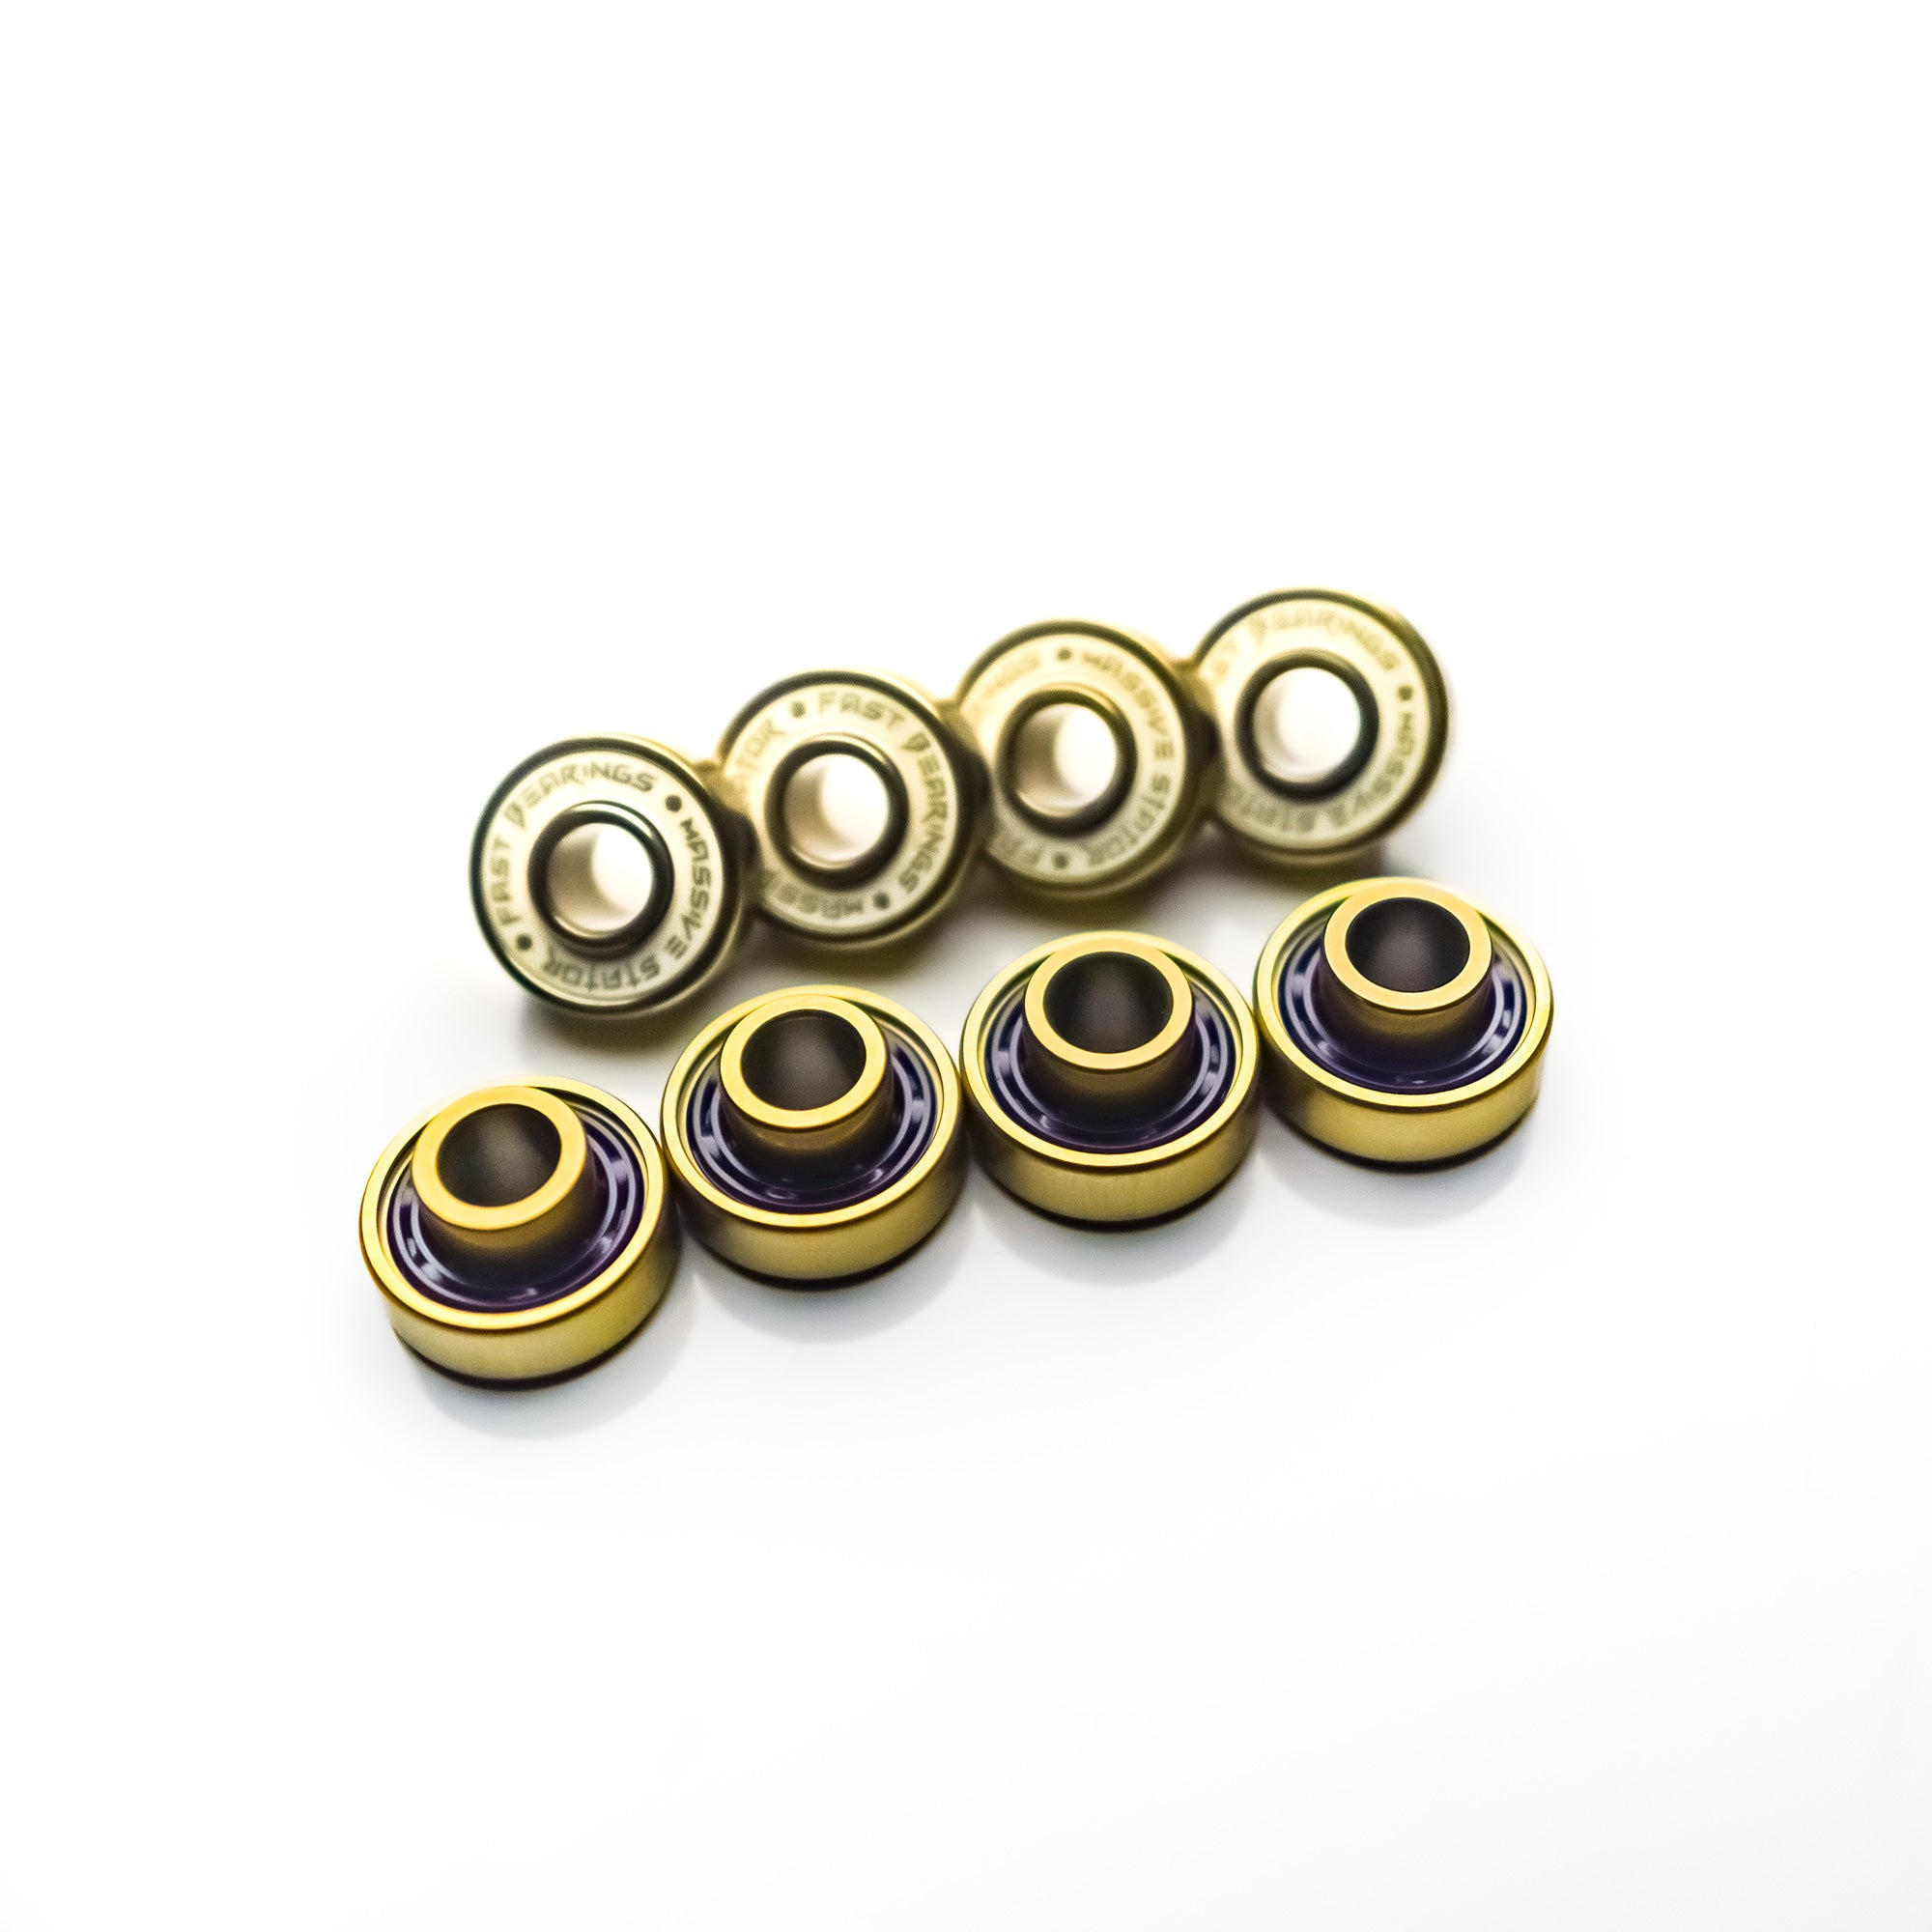 Titanium Fast Bearings With Built in Spacers 8pcs - Massive Stator